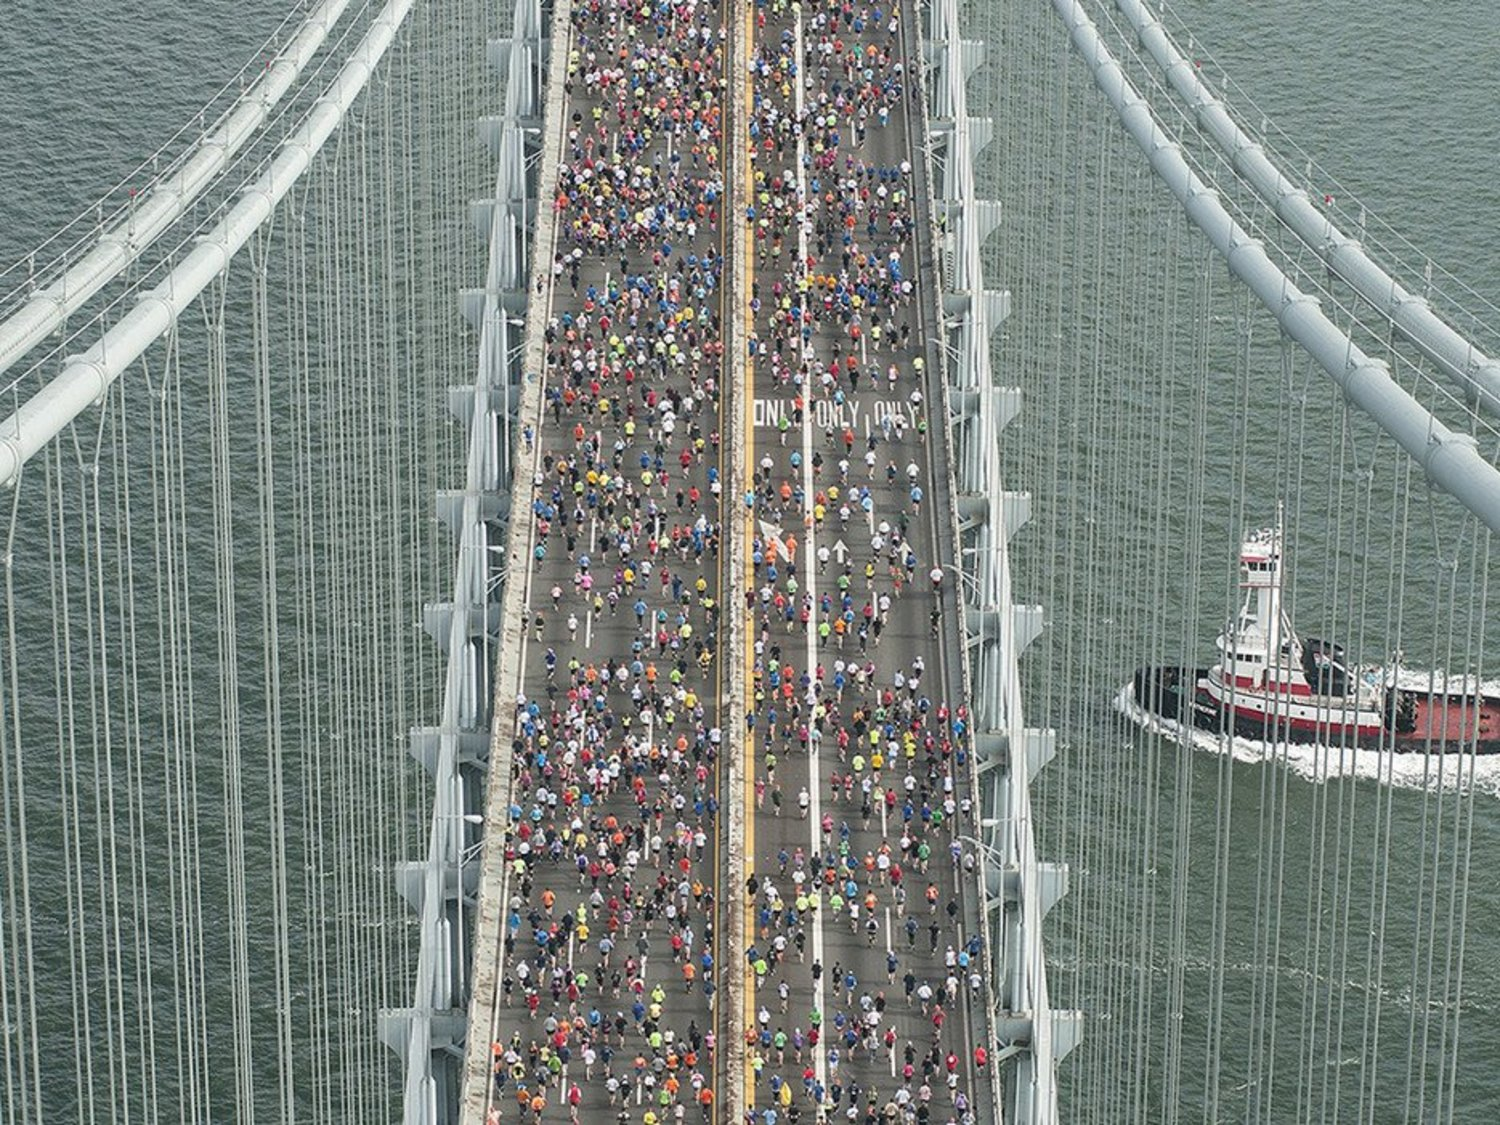 Here's where to go for the best views of the NYC Marathon tomorrow https://t.co/AgyVvrpBvv #tcsnycmarathon https://t.co/mZWKa3UM9Z